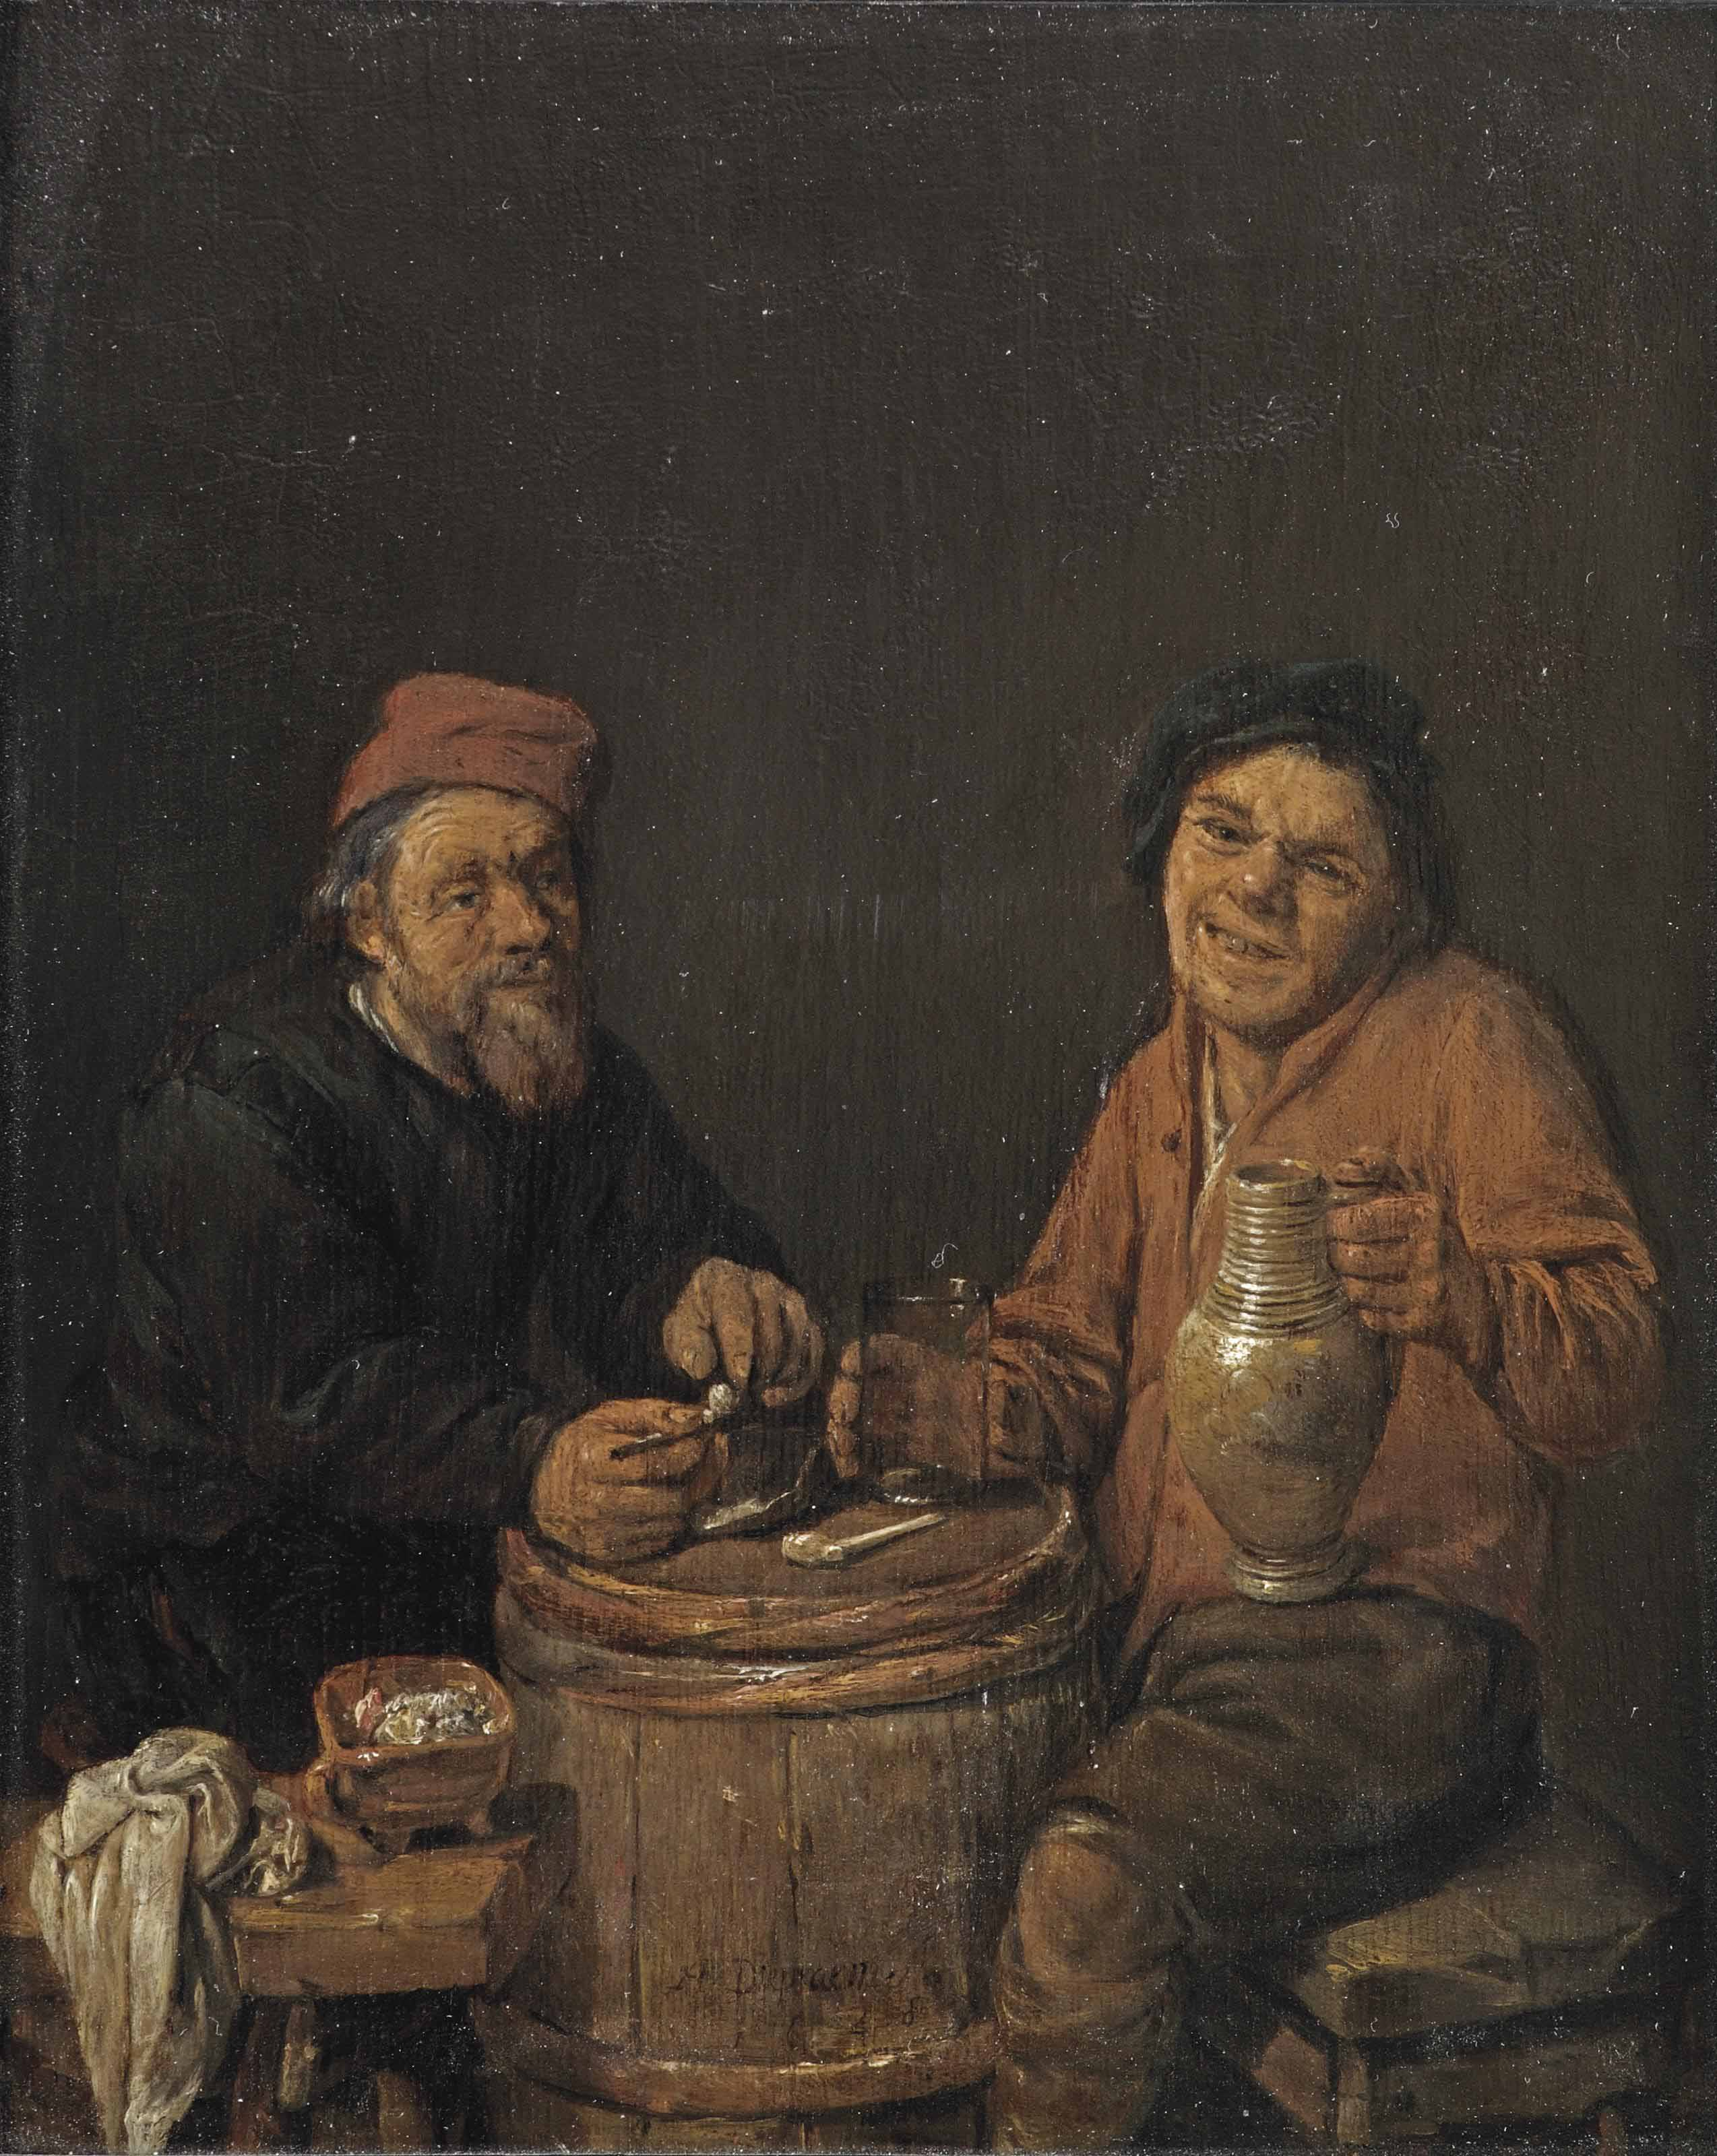 Two peasants smoking and drinking